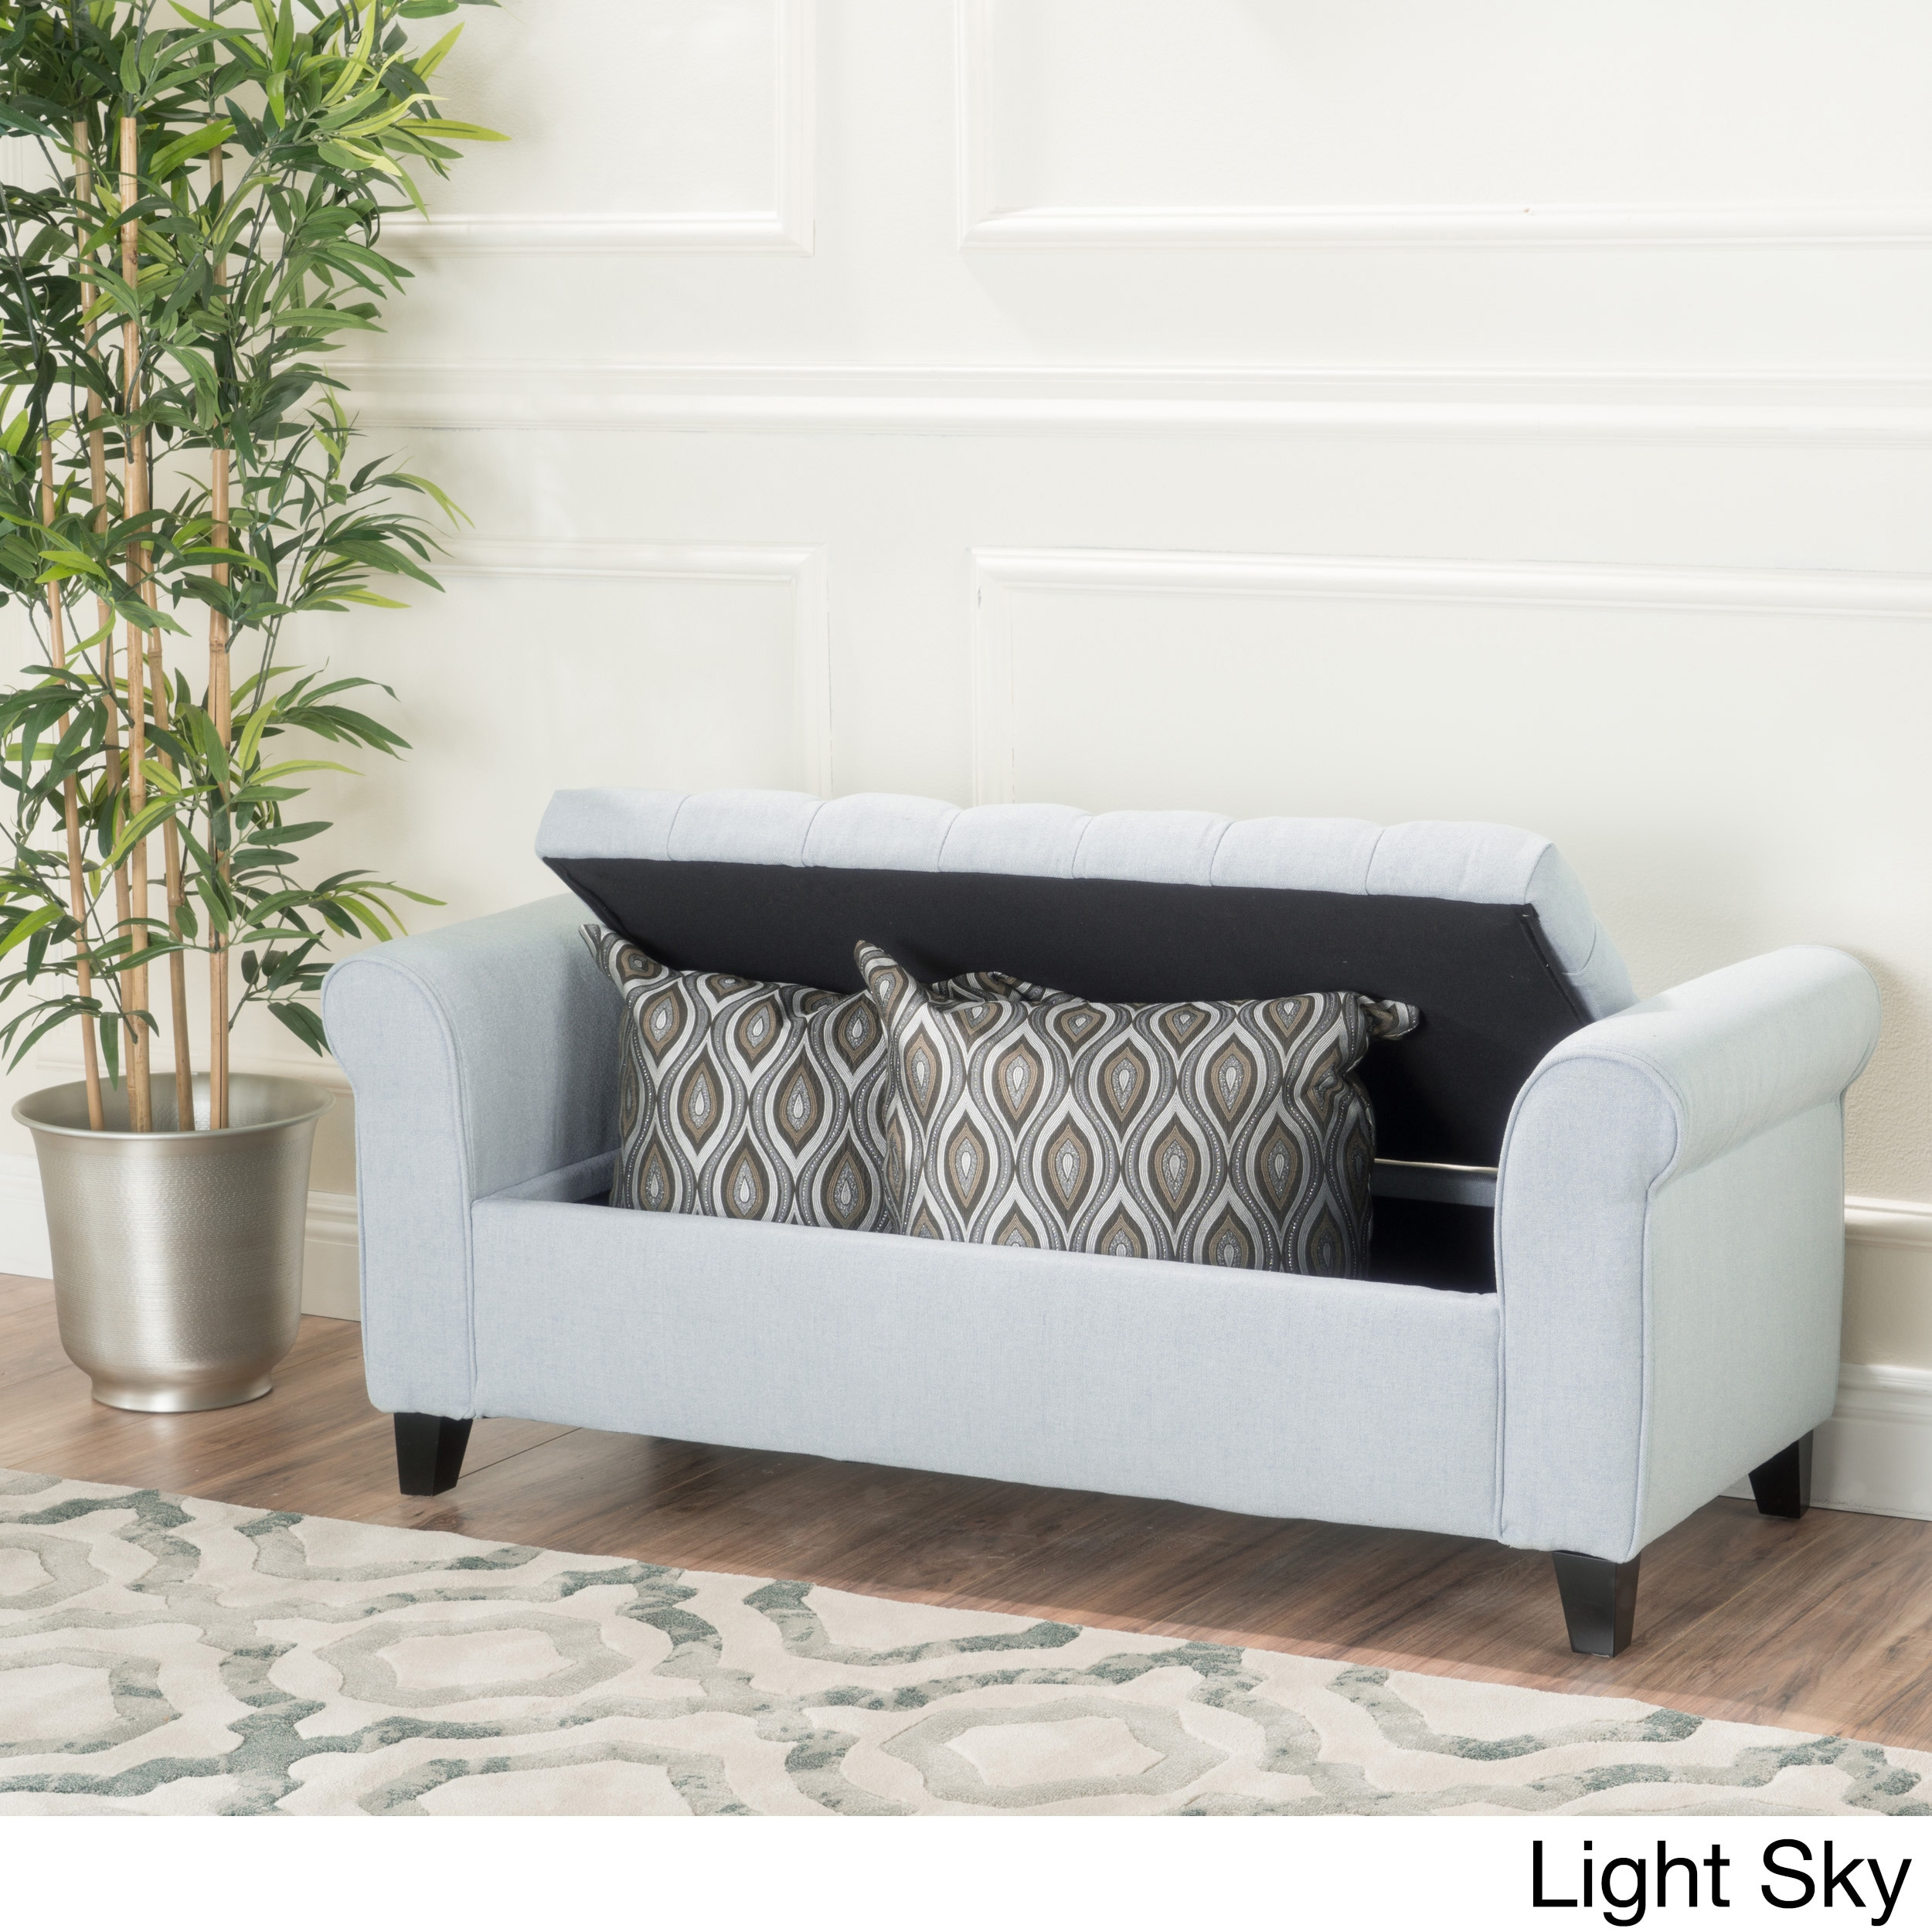 Kosas Home Fabric Storage Bedroom Bench Reviews: Keiko Tufted Fabric Armed Storage Ottoman Bench By